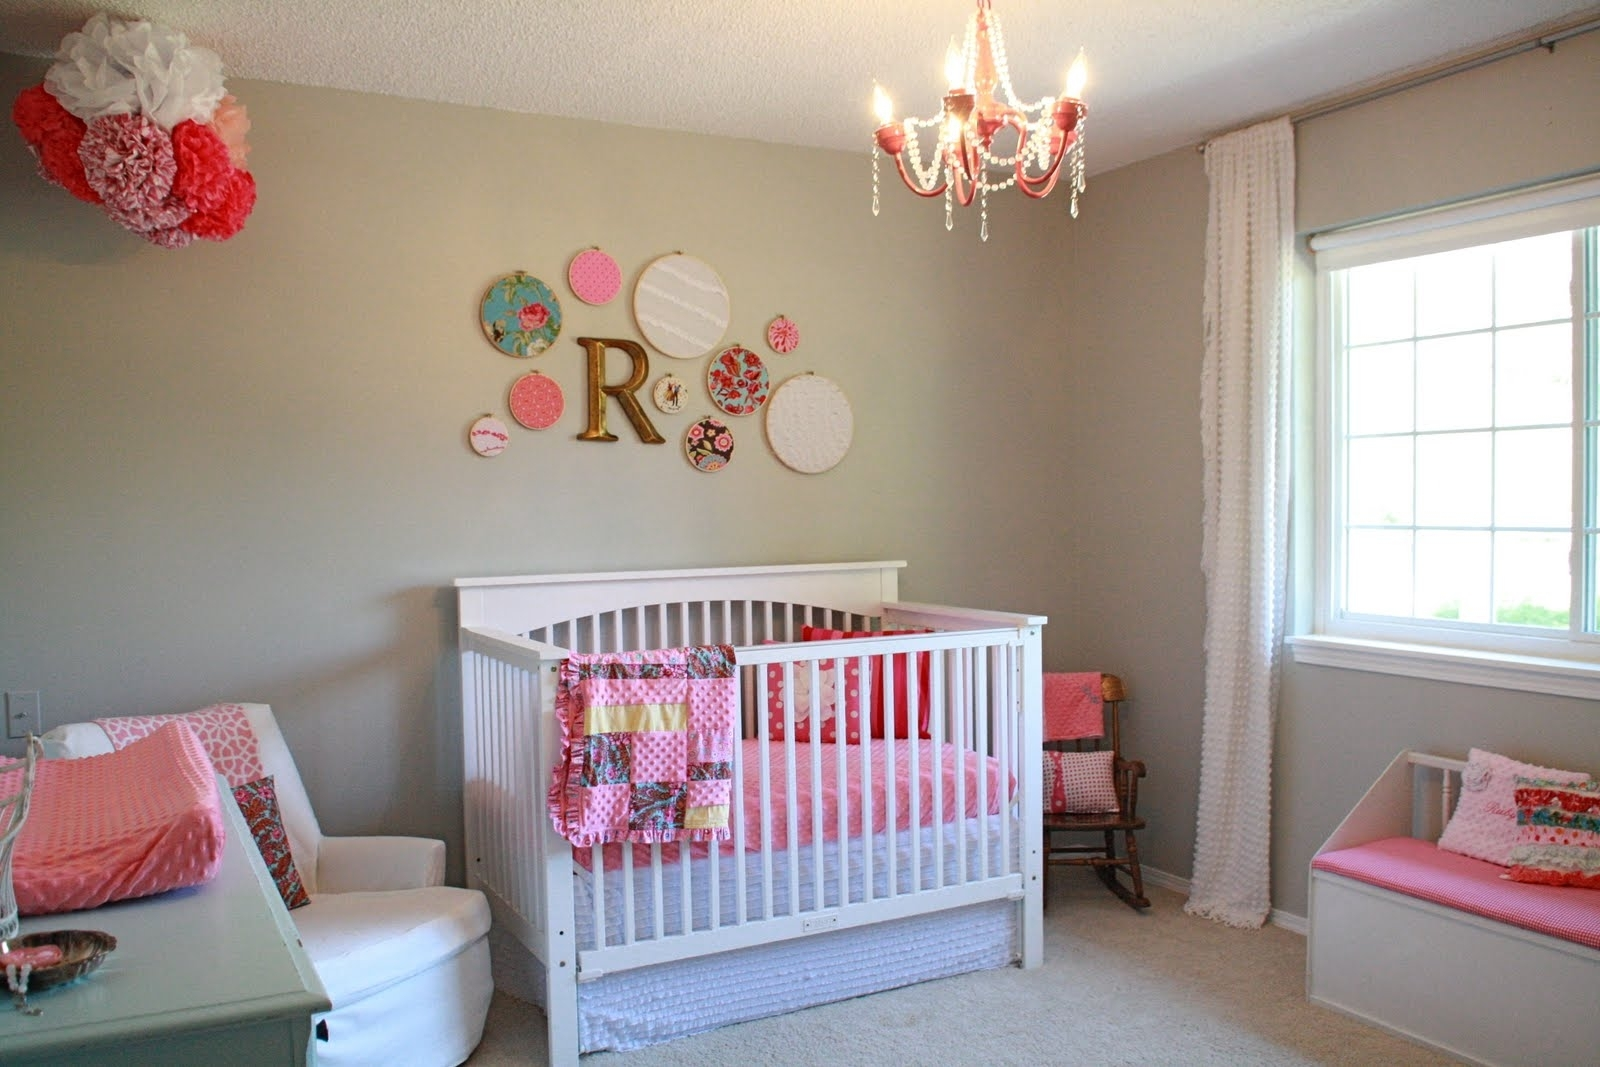 Vintage Baby Nursery Room Themed Feat Decorative Wall Accessories Intended For Most Recently Released Girl Nursery Wall Accents (Gallery 6 of 15)